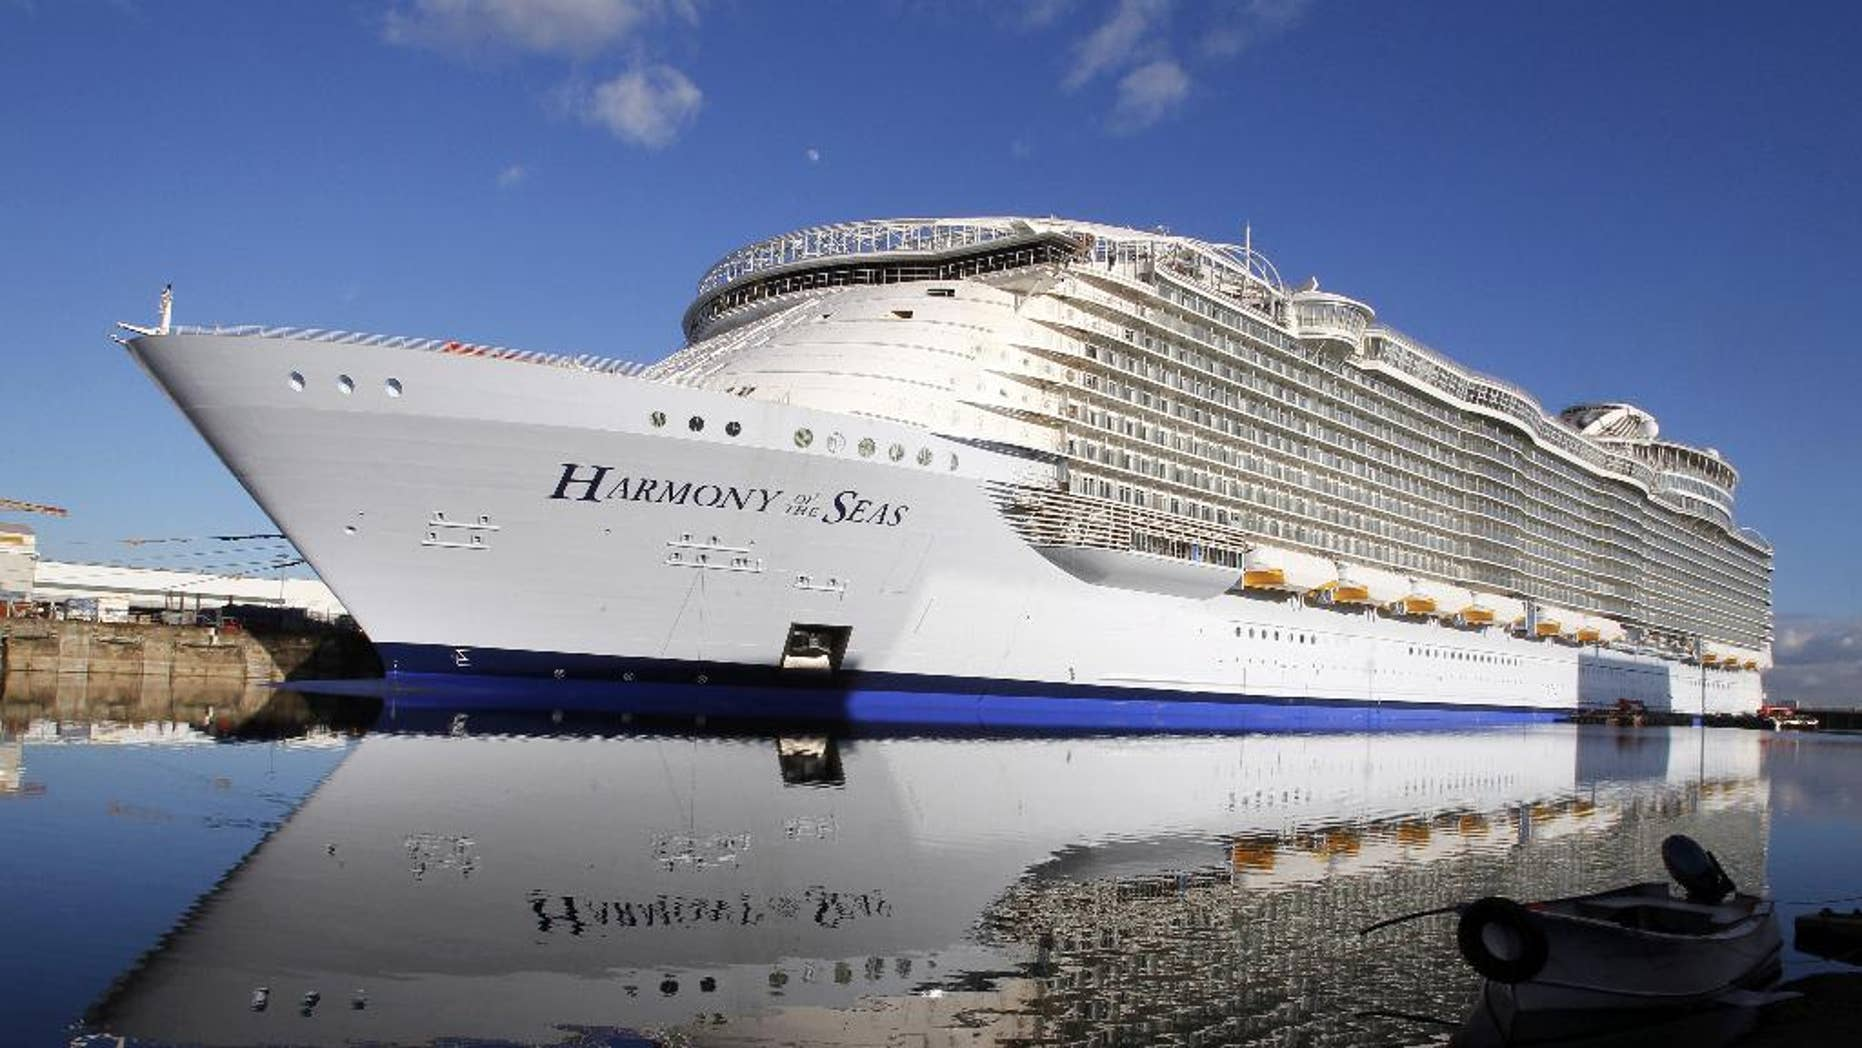 """FILE- In this  Feb. 18, 2016 file photo, the """"Harmony of the Seas"""" docks at the STX Shipyard in Saint-Nazaire, western France. Tens of thousands of French well-wishers waved revoir to the largest cruise ship in the world as it set sail on its maiden voyage to the U.K. after 32 months in a French shipyard. (AP Photo/Laetitia Notarianni, File)"""